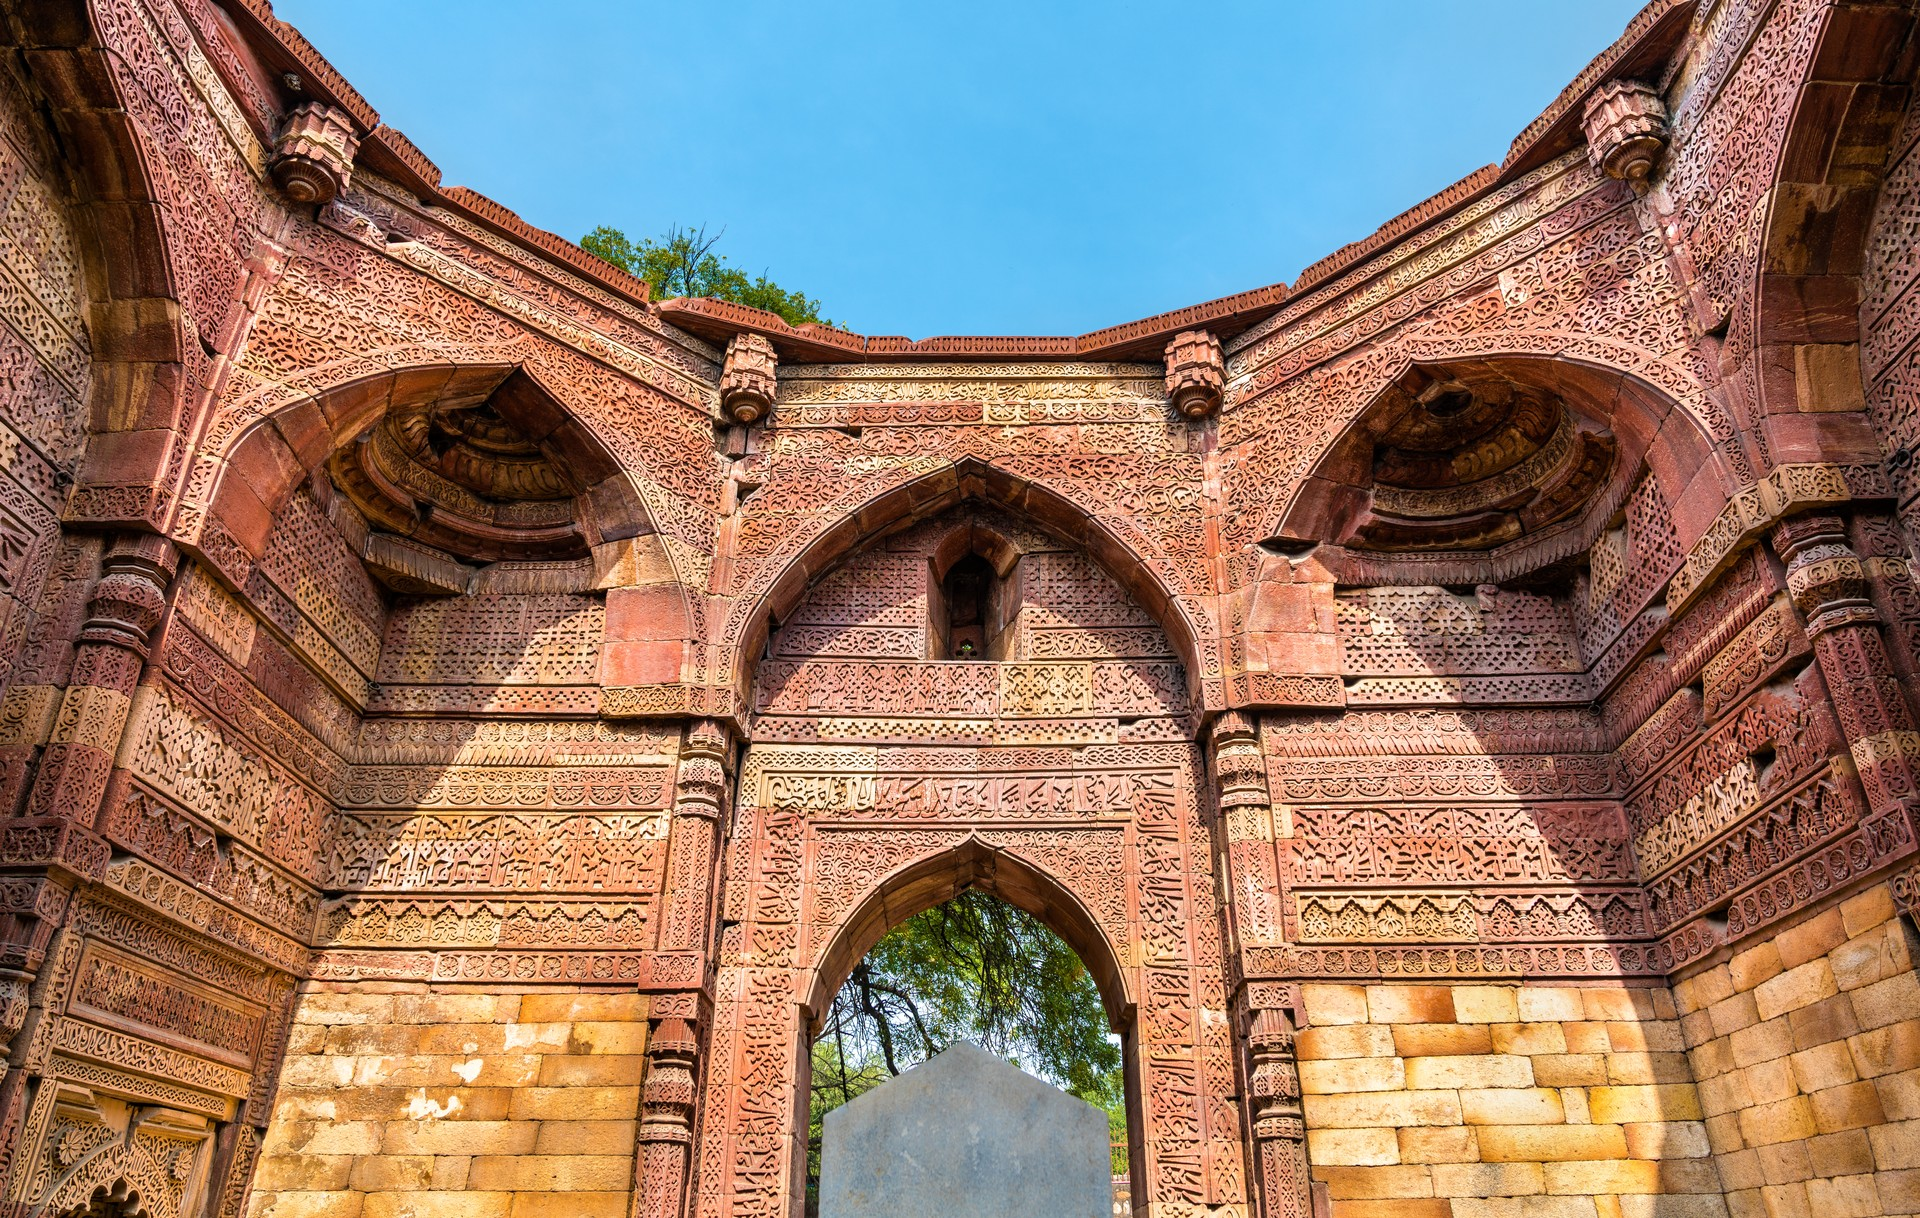 The ancient tomb of Iltutmish, 13th century Sultan of Delhi